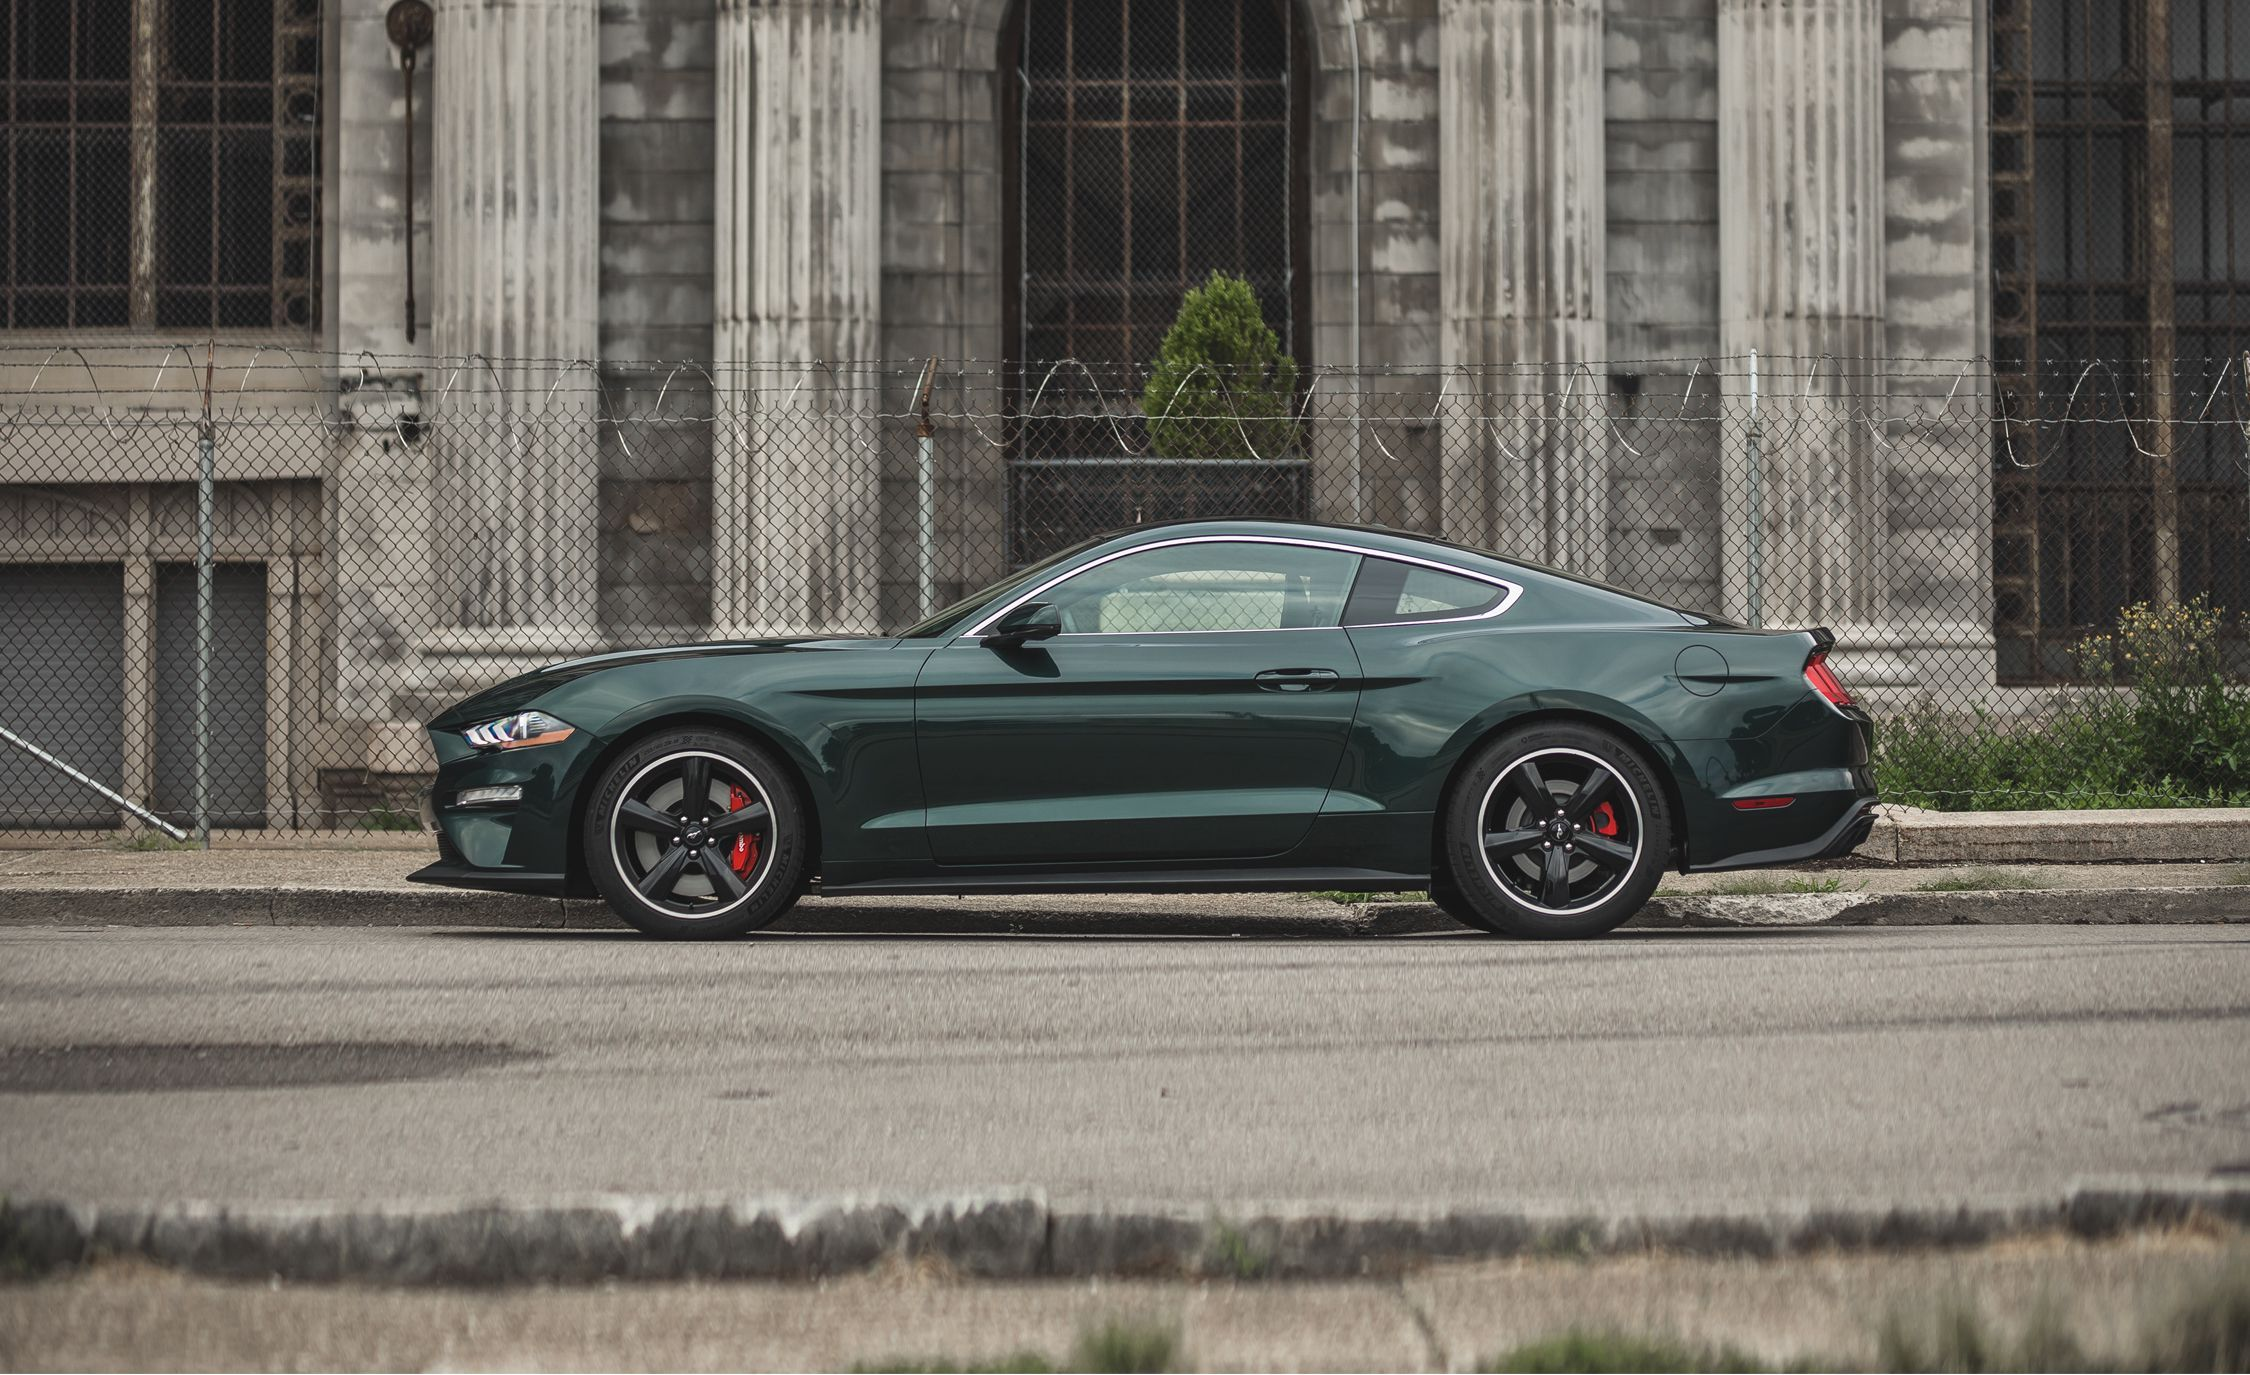 InDepth Photos of the 2019 Ford Mustang Bullitt Ford